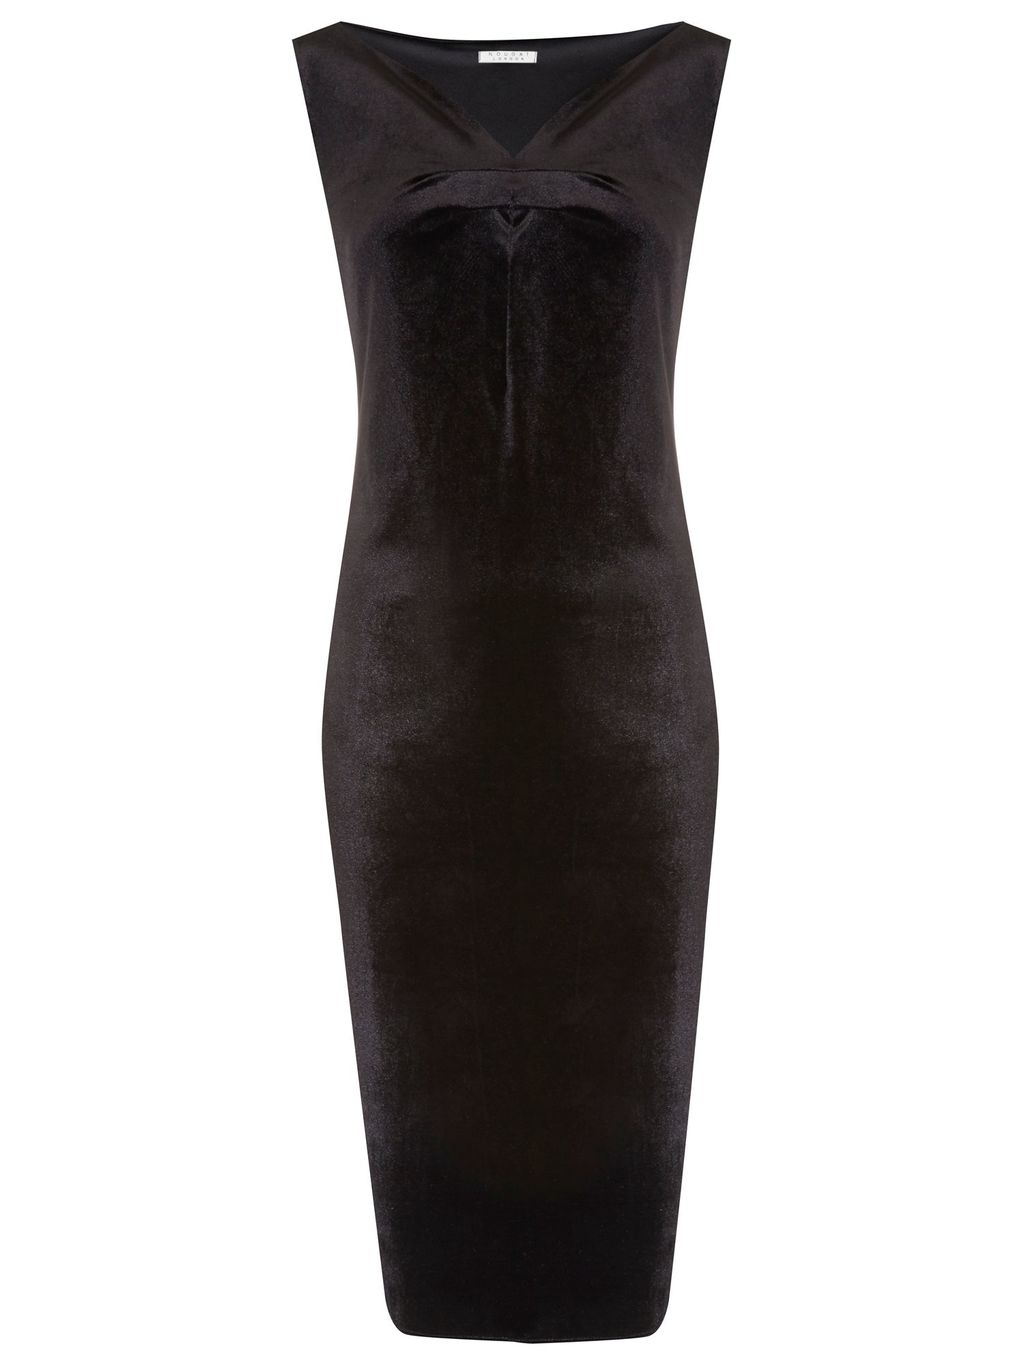 Mayfair Velvet Dress, Black - neckline: v-neck; fit: tight; pattern: plain; sleeve style: sleeveless; style: bodycon; predominant colour: black; occasions: evening; length: on the knee; fibres: polyester/polyamide - stretch; sleeve length: sleeveless; pattern type: fabric; texture group: velvet/fabrics with pile; season: a/w 2015; wardrobe: event